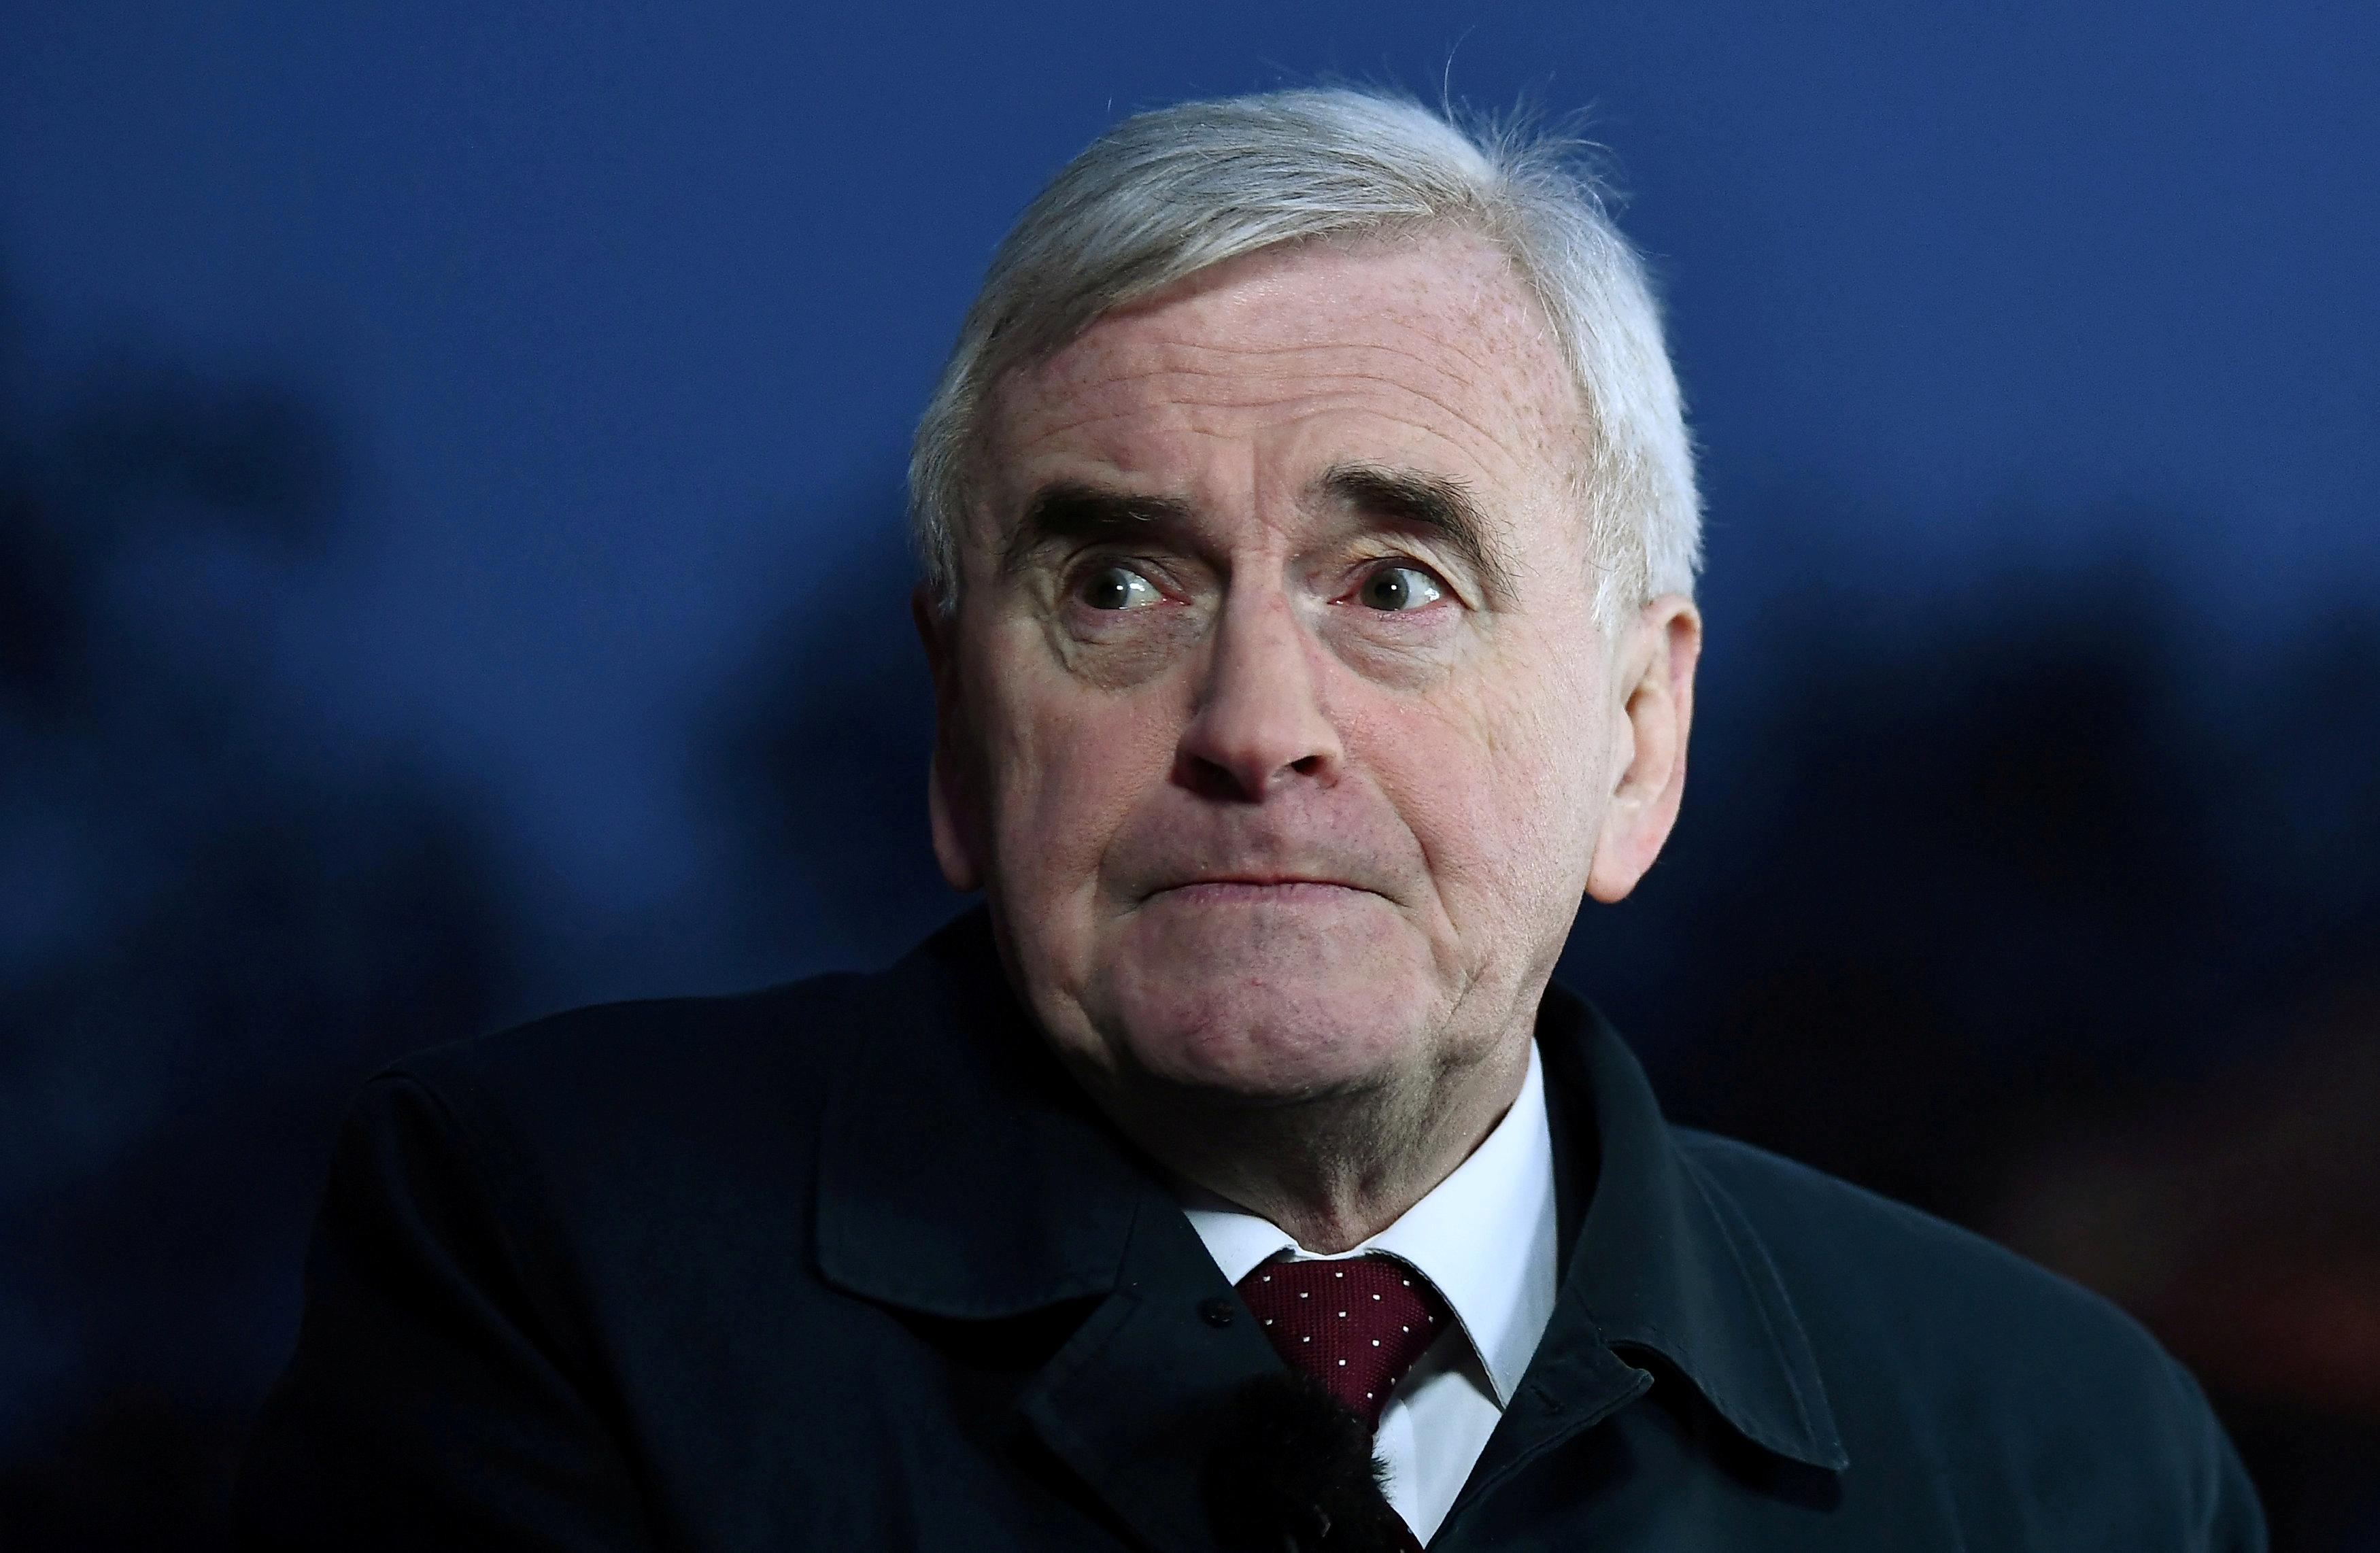 Labour's McDonnell says Thomas Cook bosses should pay back bonuses